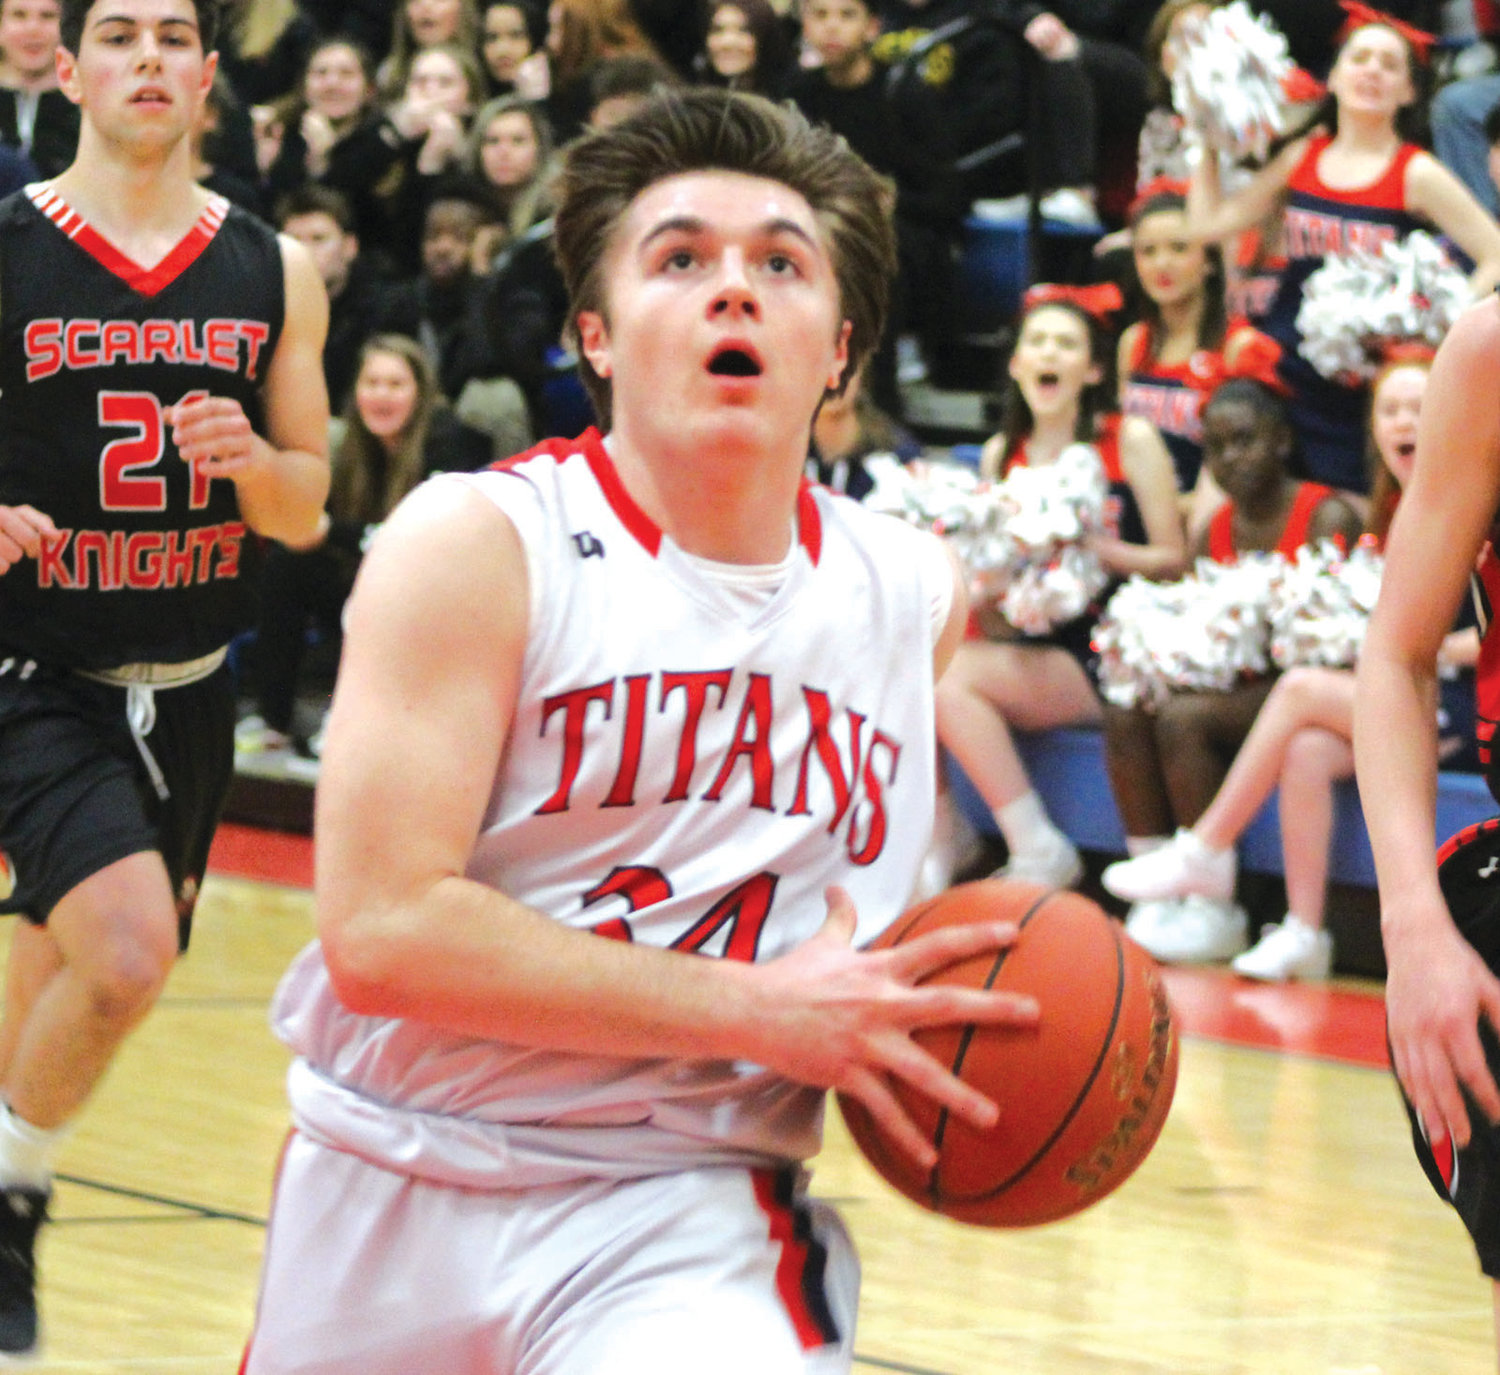 PLAYOFF BASKETBALL: Toll Gate's Austin Noon drives to the basket.